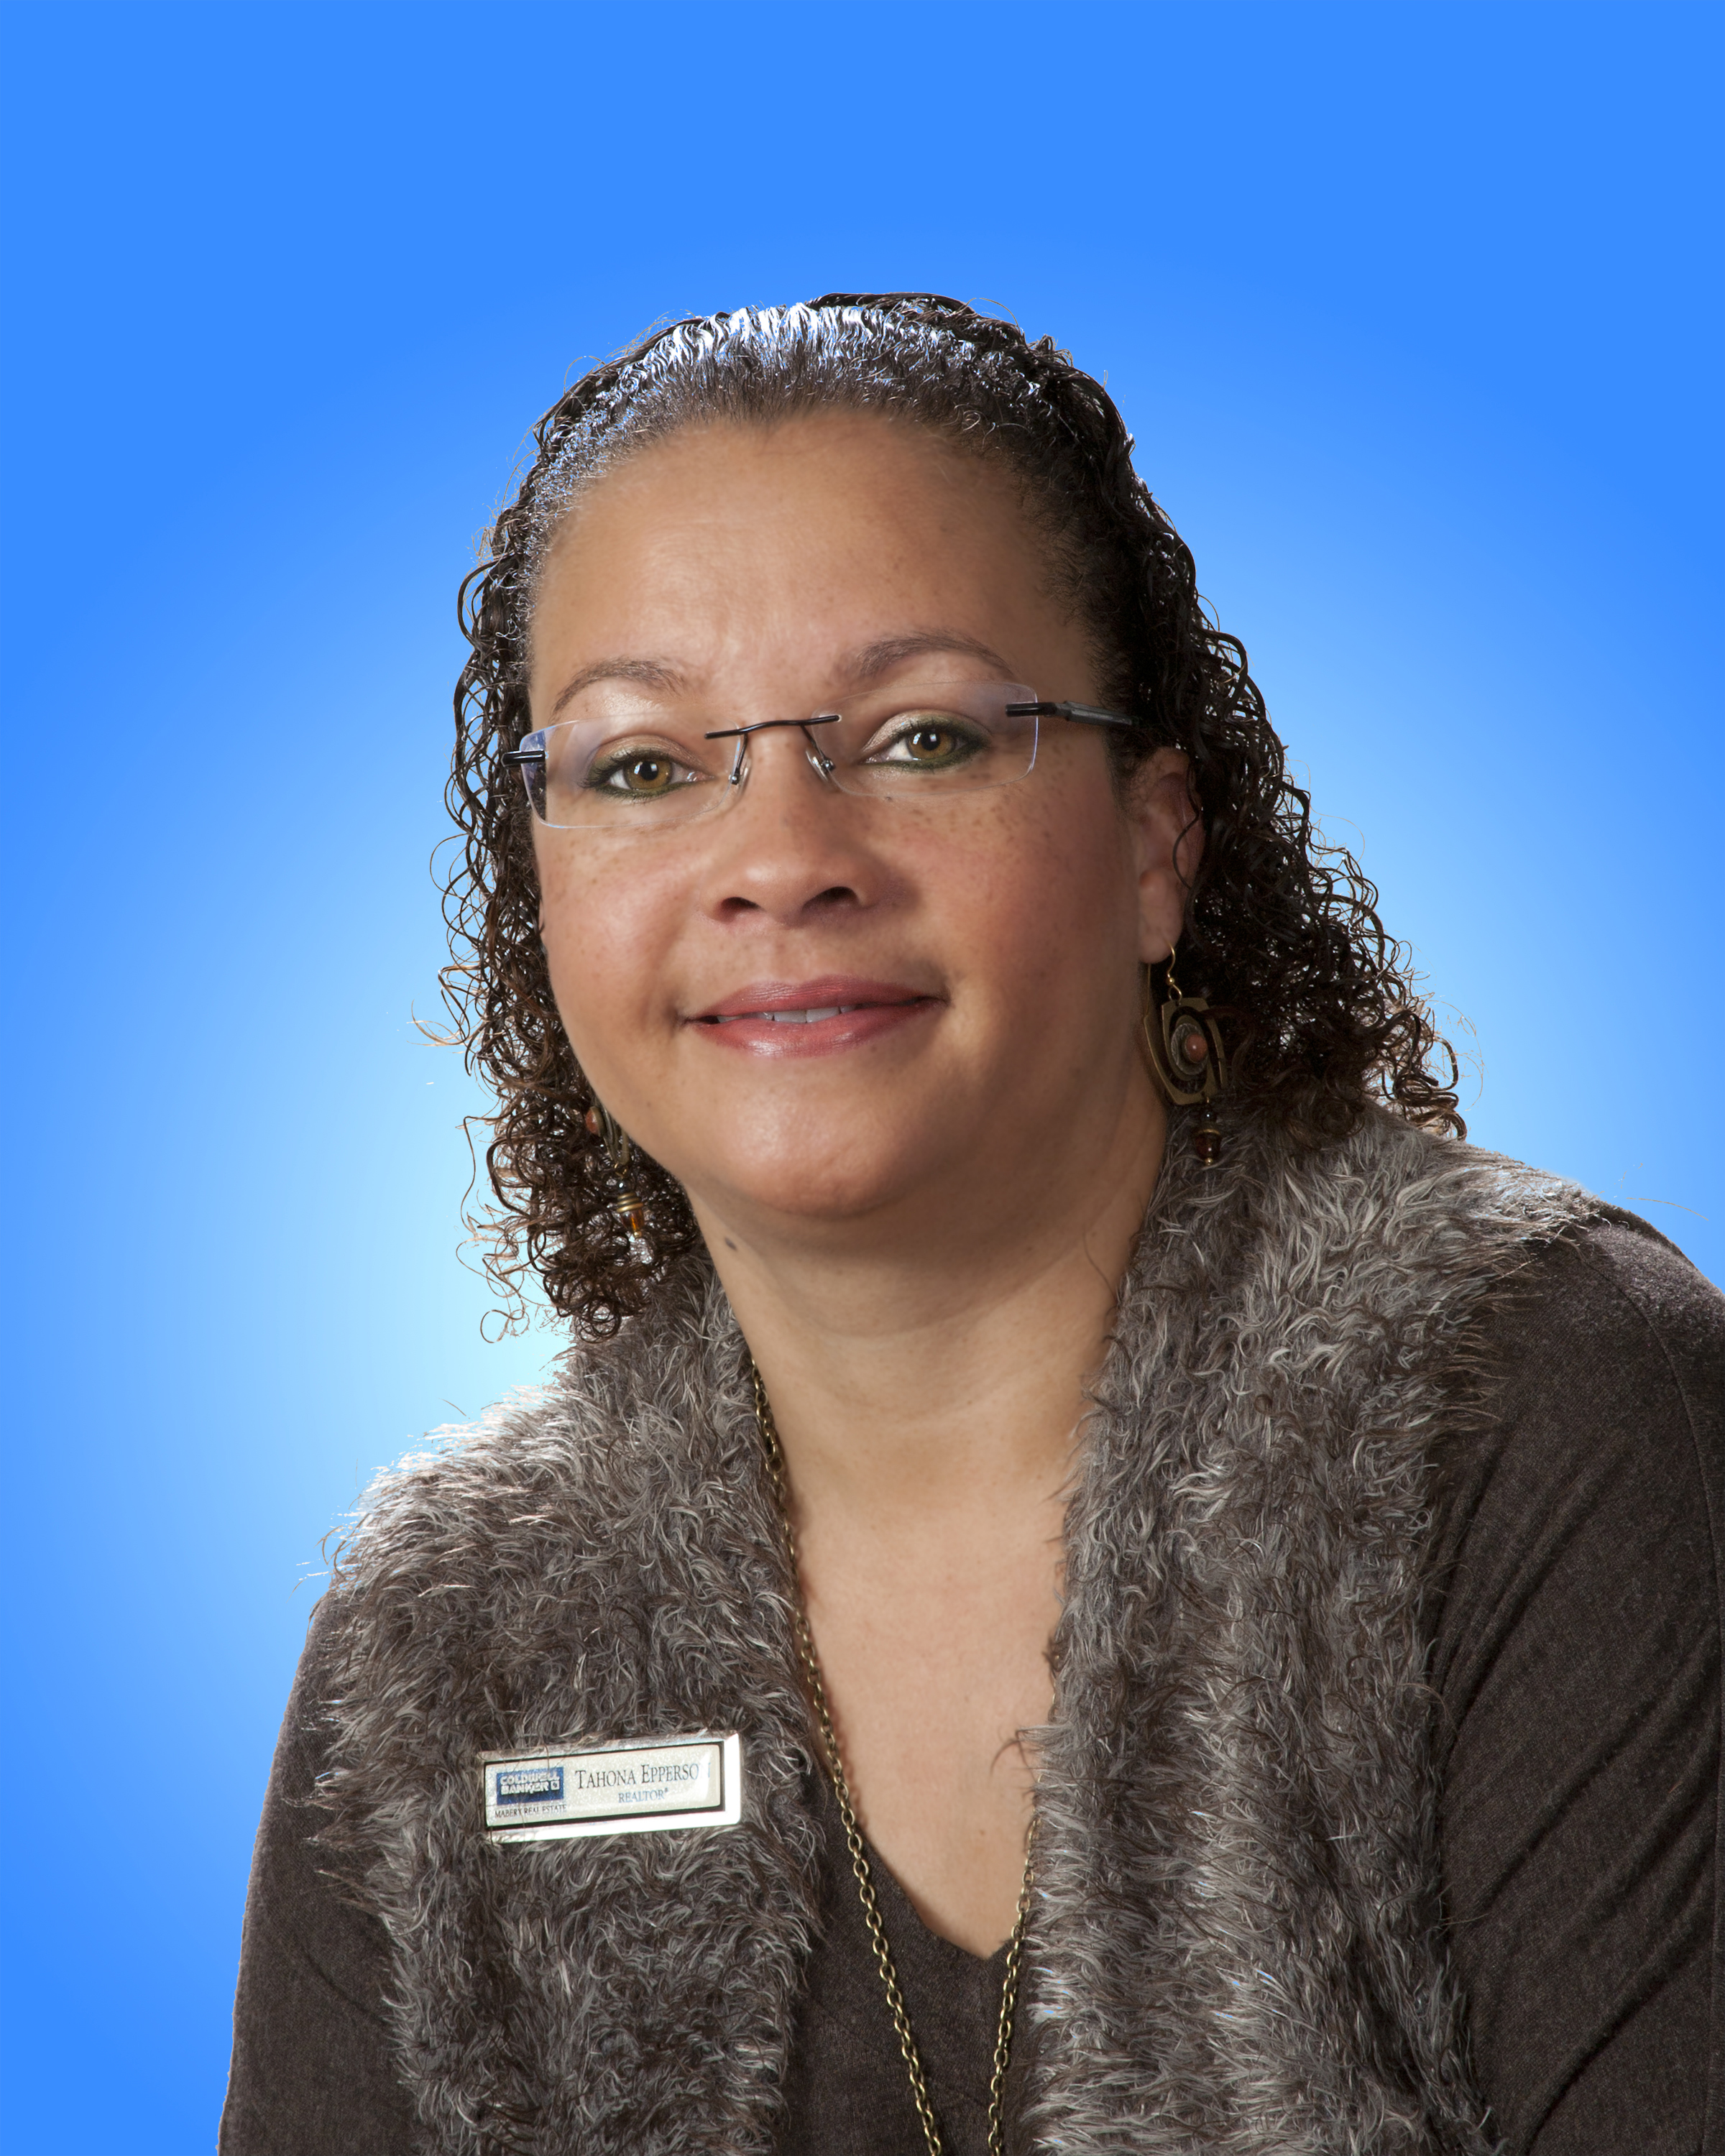 Tahona Epperson, Coldwell Banker - Mabery Real Estate, Past Board Chair